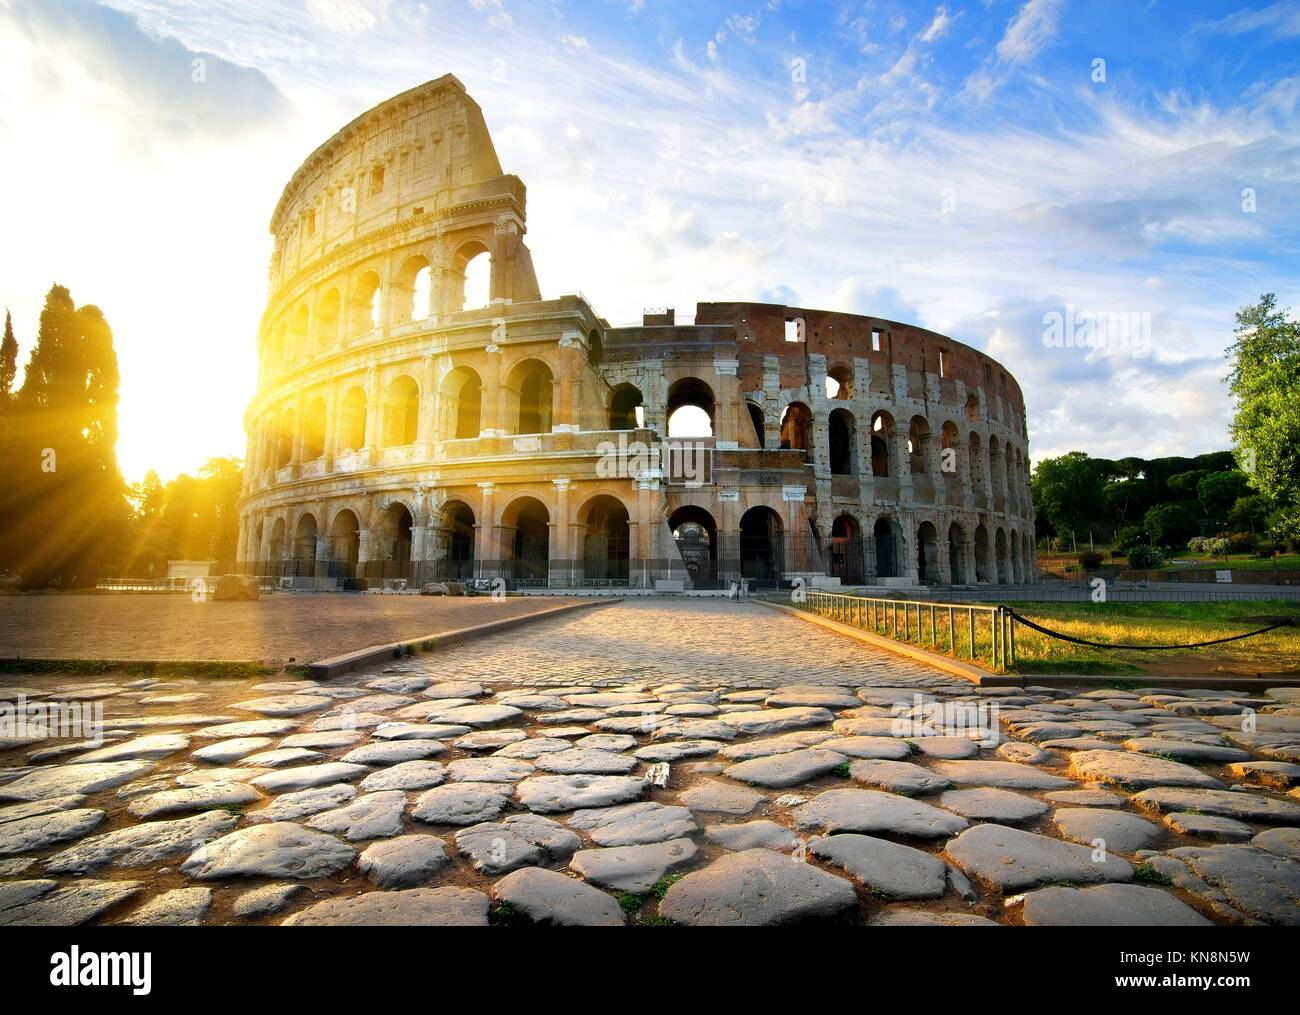 Colosseum in Rome at dawn, Italy. - Stock Image